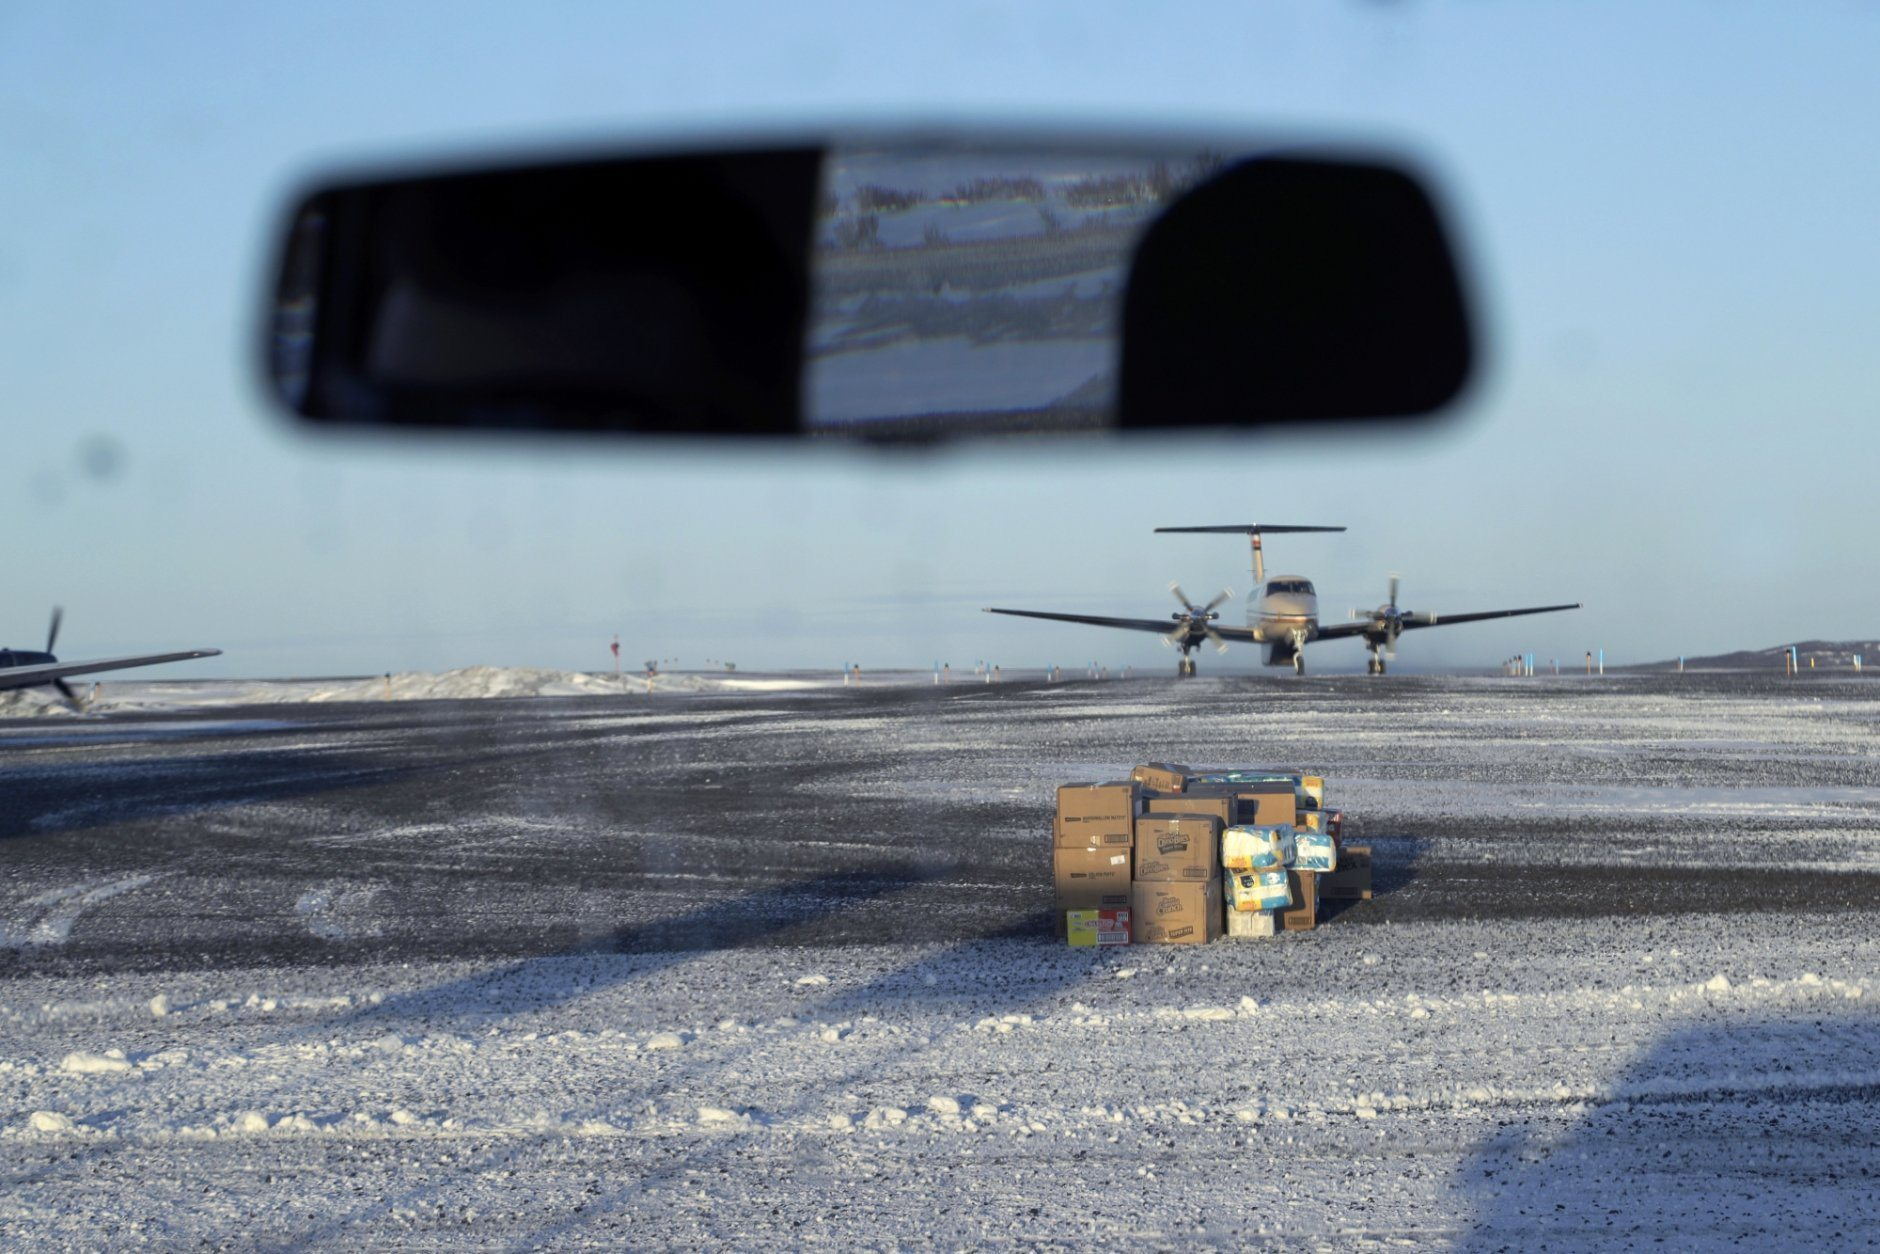 In this Feb. 19, 2019, photo, a pile of deliveries sit on the tarmac of the airport in the Native Village of St. Michael, Alaska, population 400. Transportation from villages to Nome is limited to air travel. (AP Photo/Wong Maye-E)